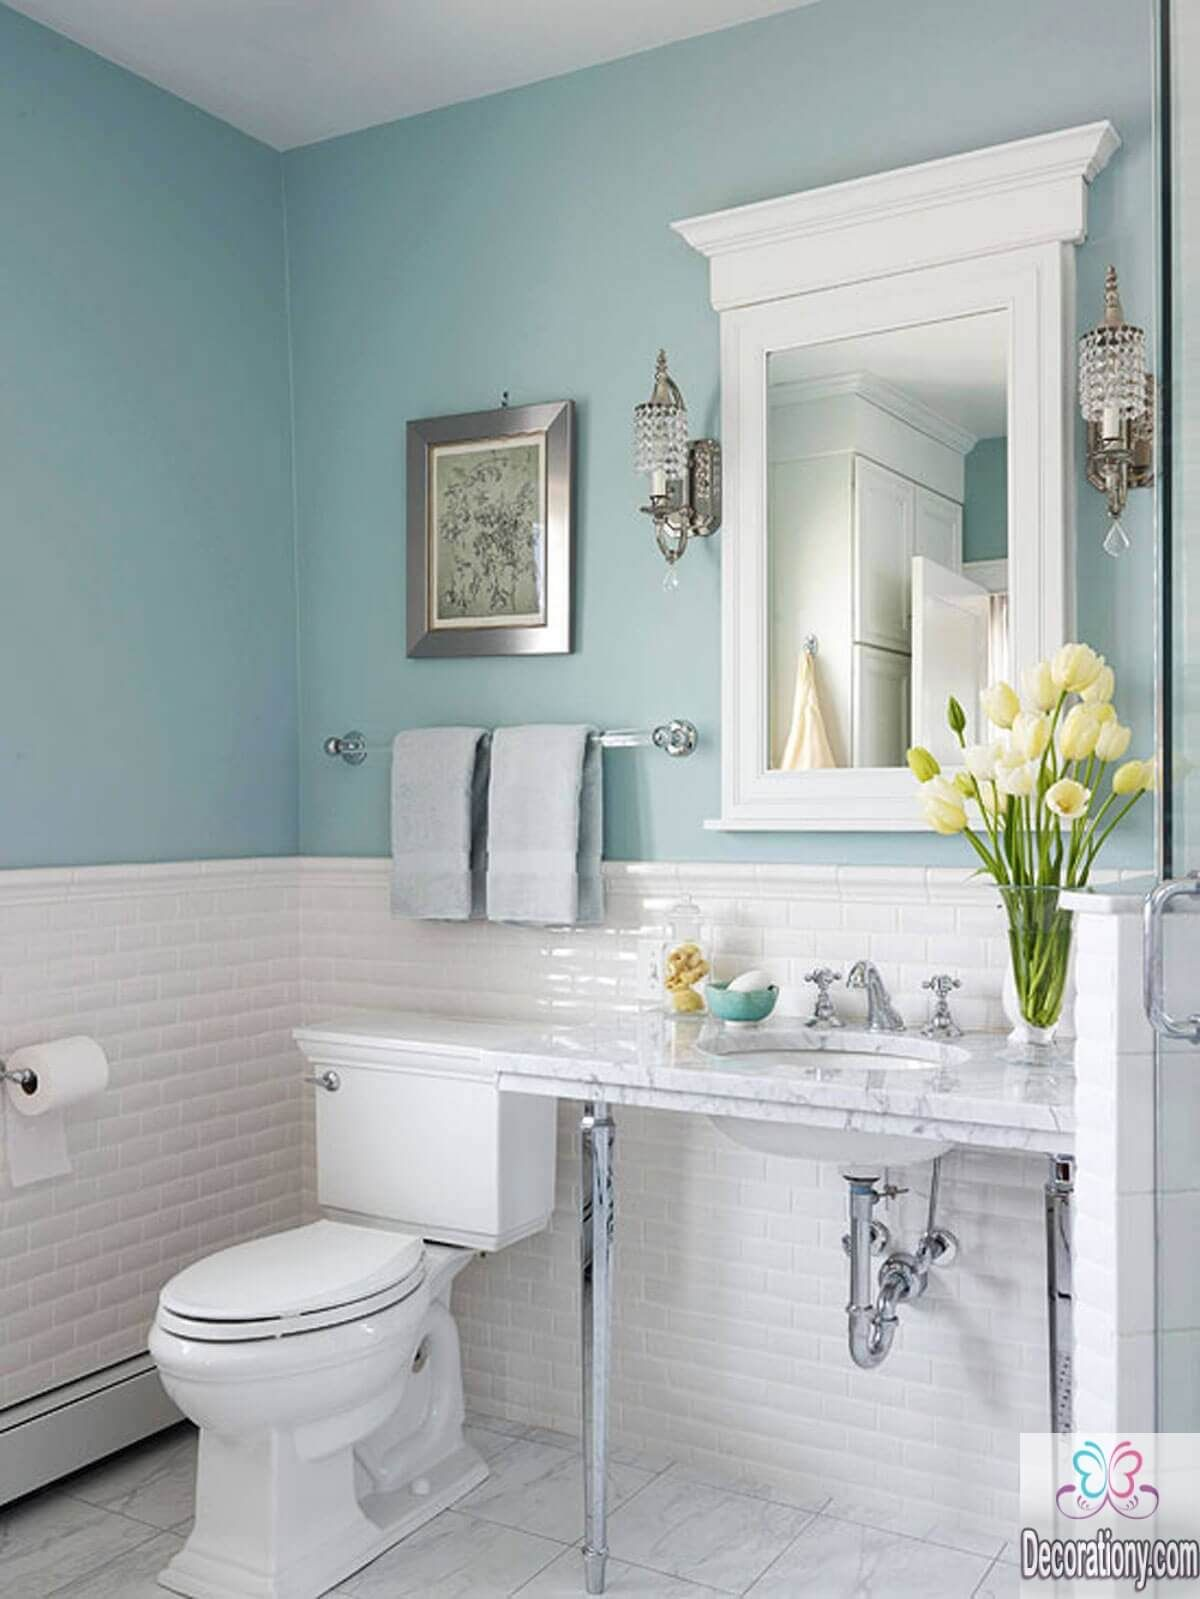 15+ Small White Beautiful Bathroom Remodel Ideas | Bathroom ...